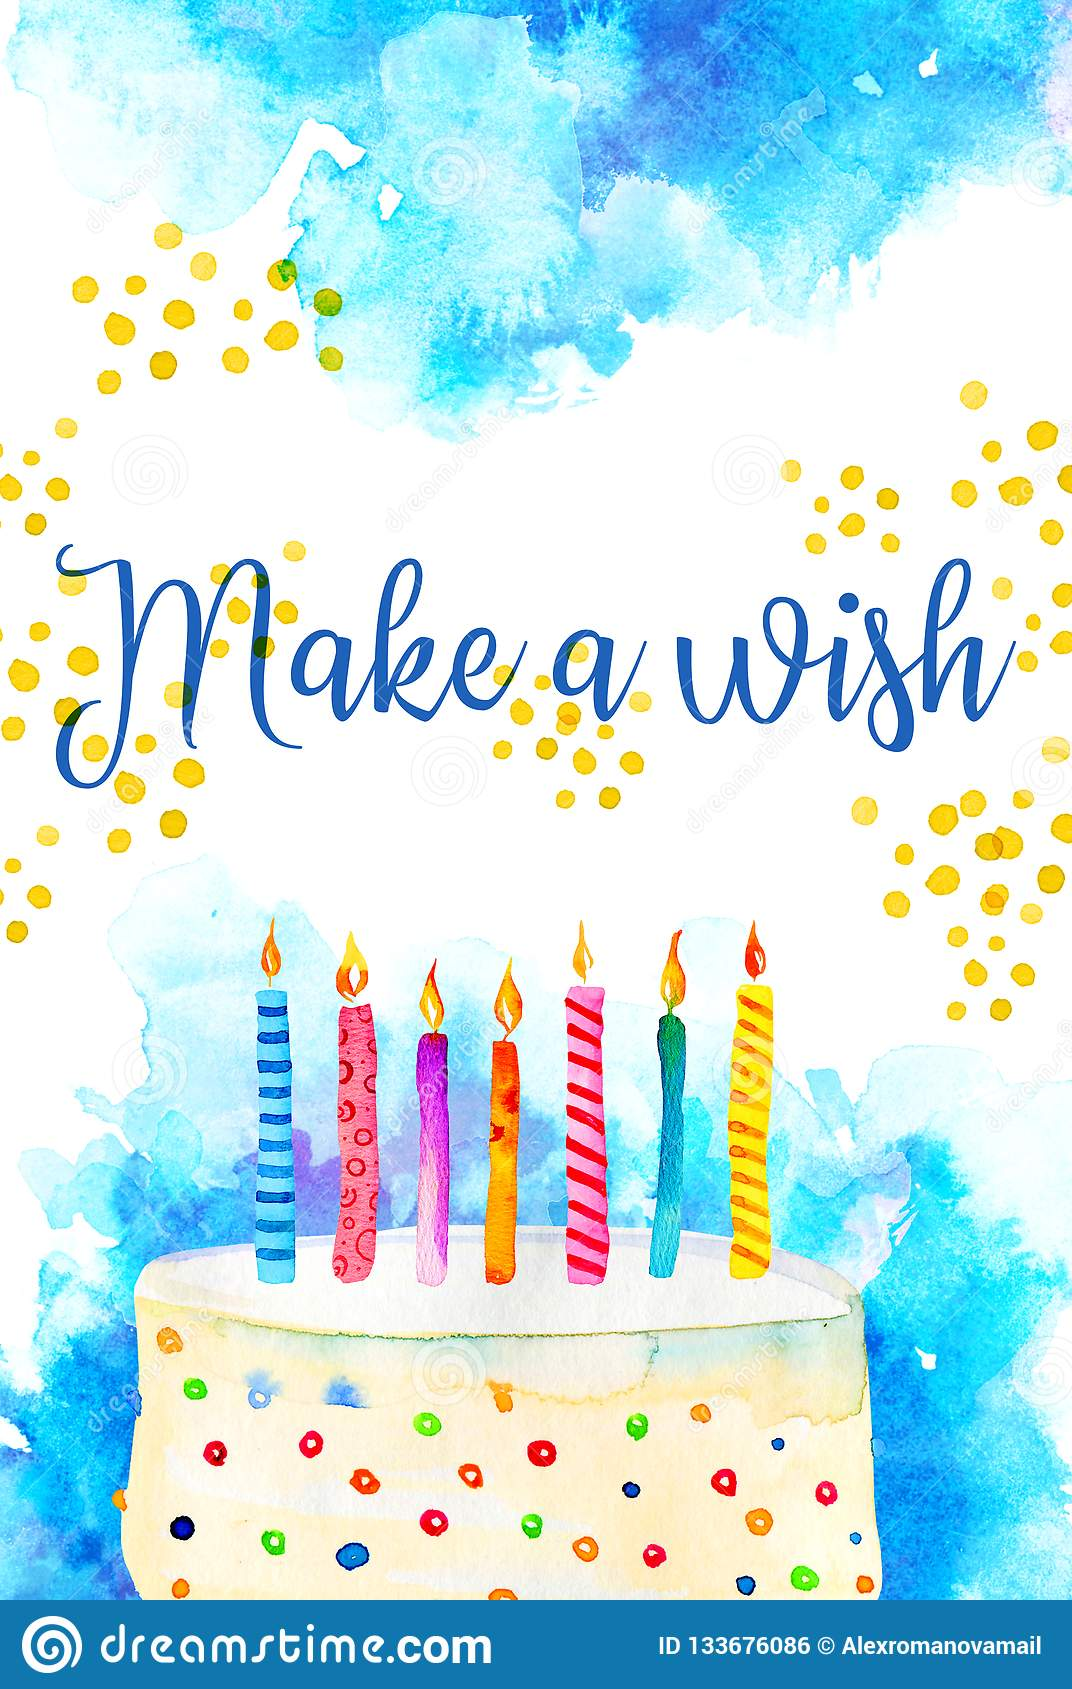 Birthday Card Design Template With Cake And Candles Greeting Make A Wish Hand Drawn